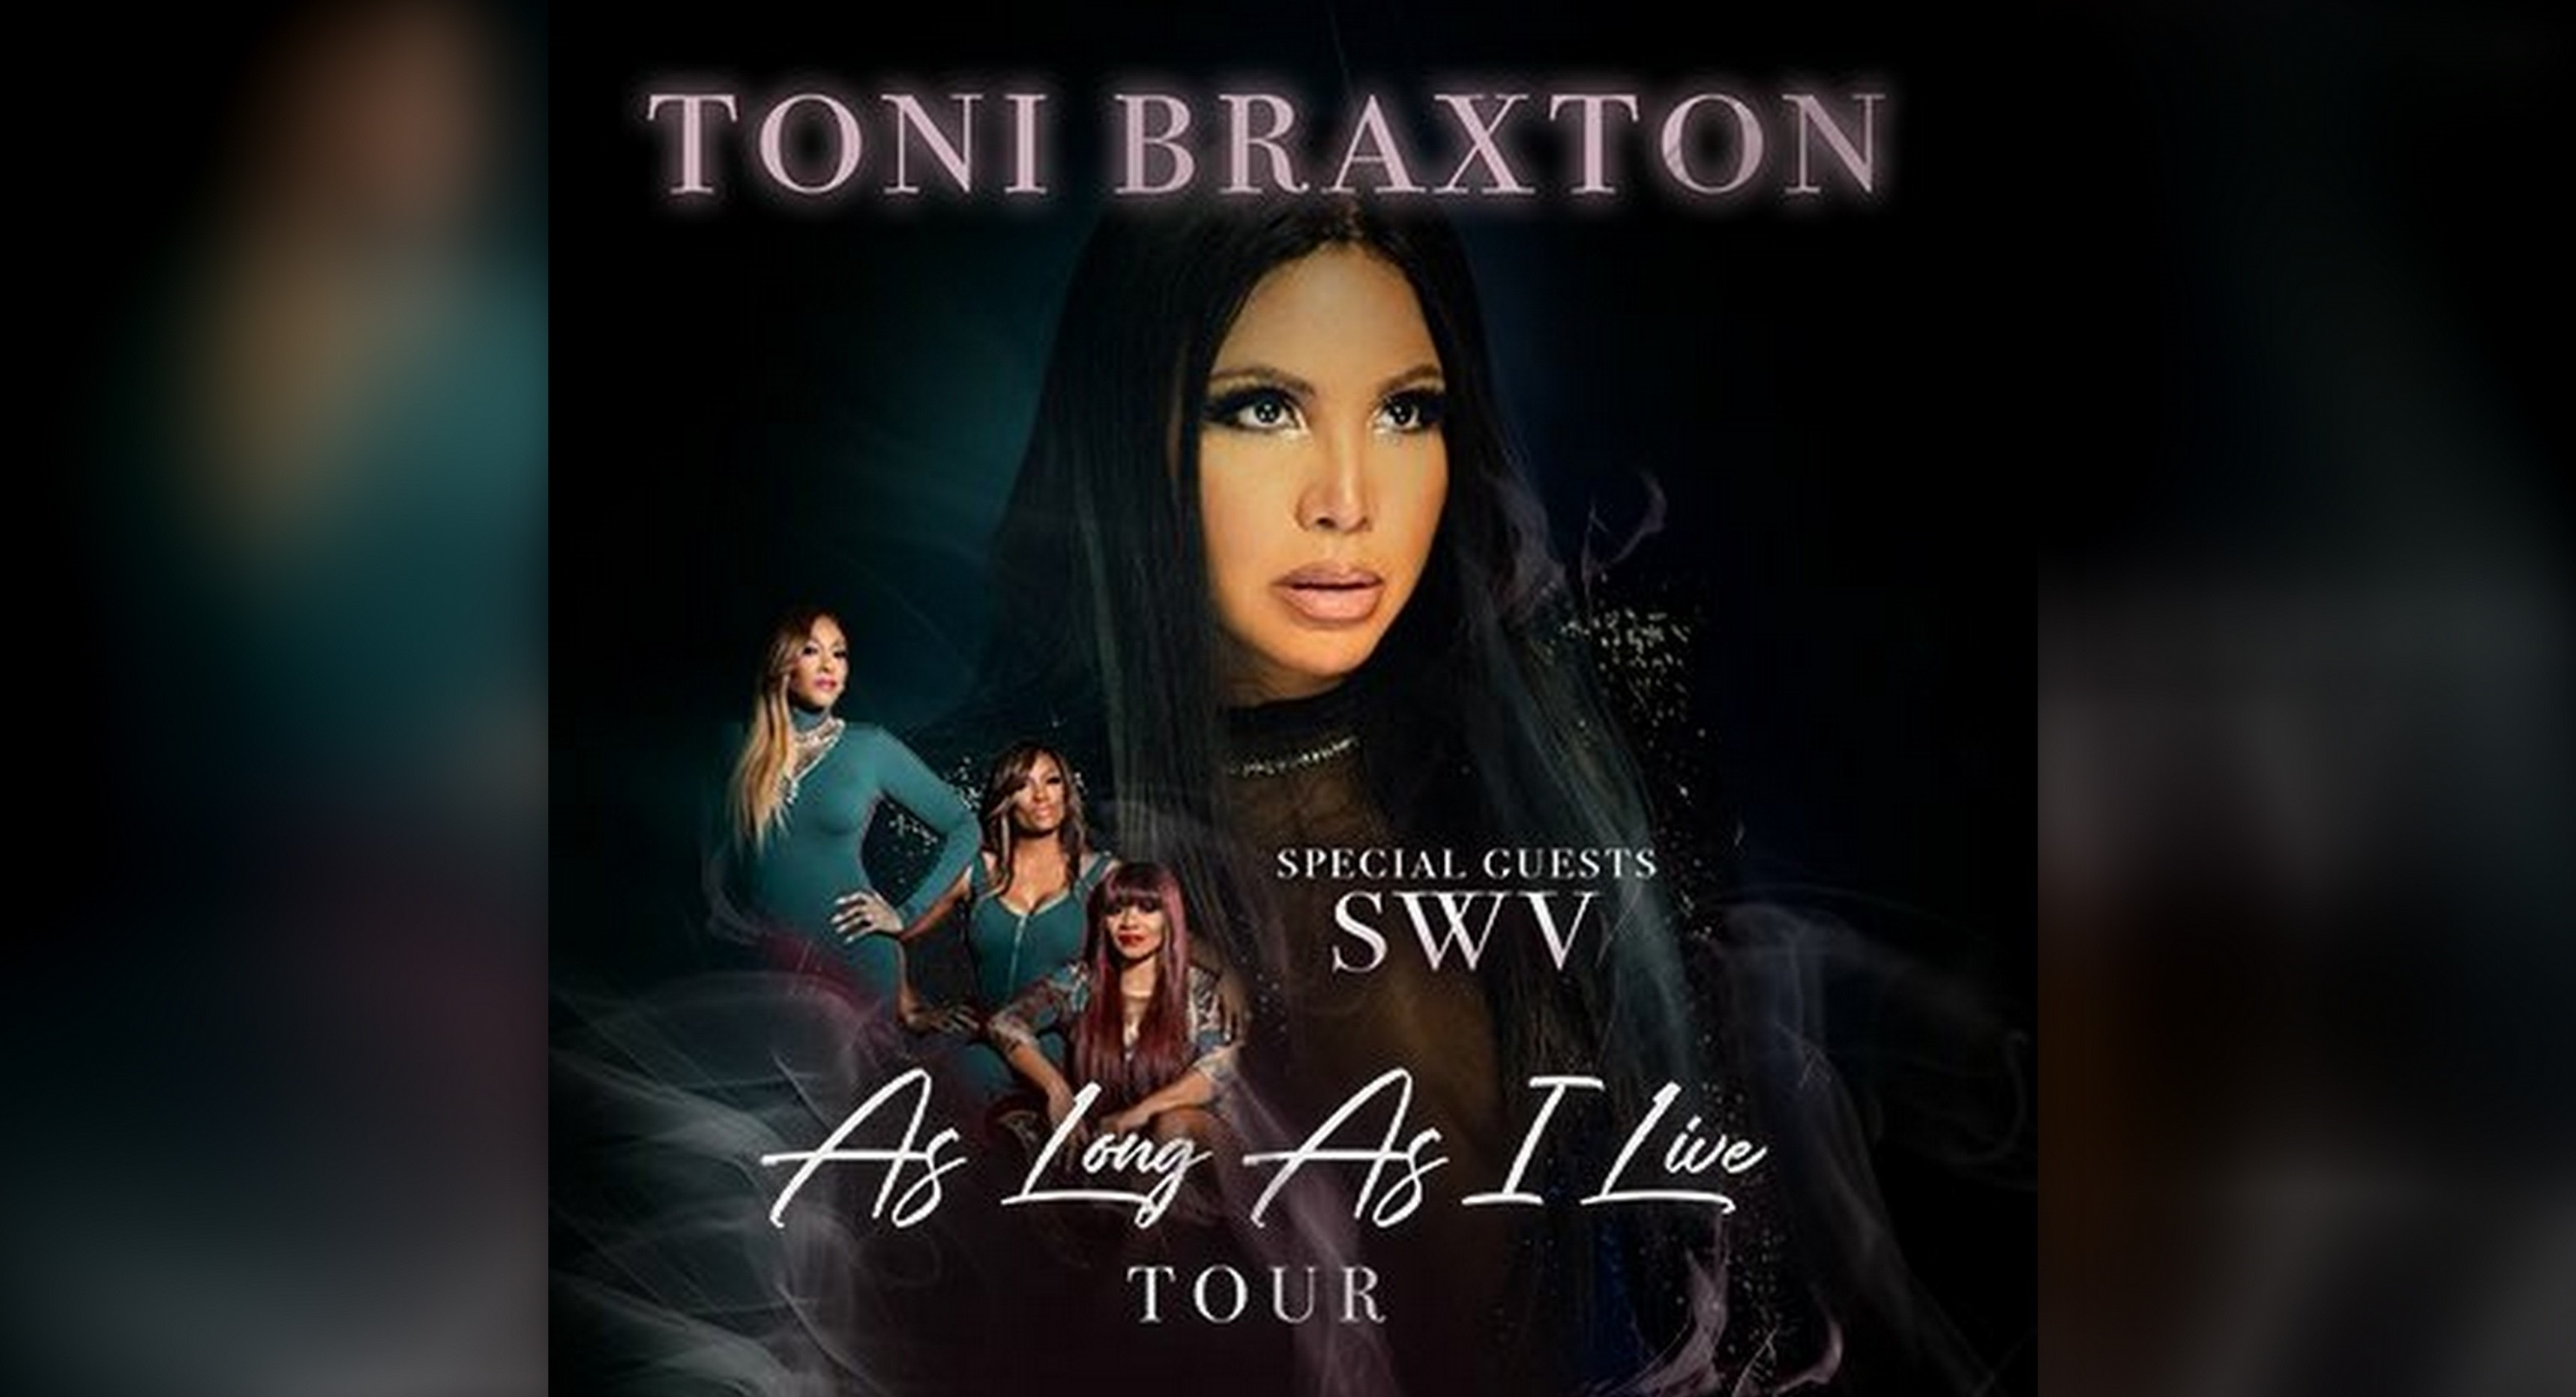 She's Coming! Toni Braxton Announces New Tour with SWV!